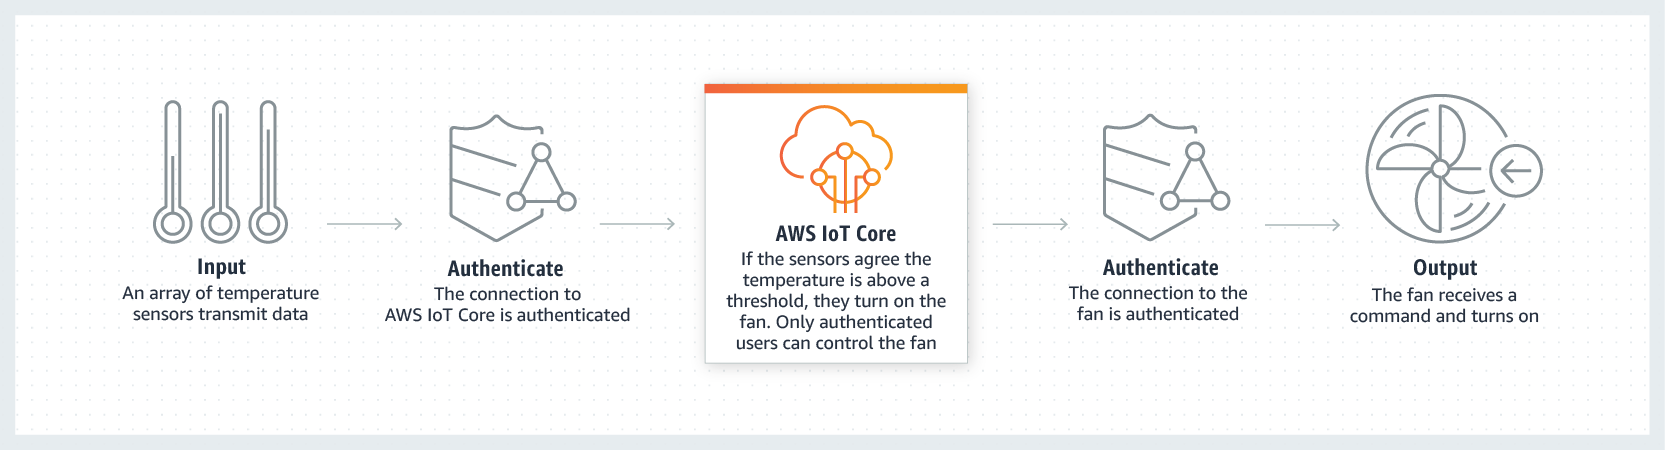 AWS IoT Core Overview - Amazon Web Services